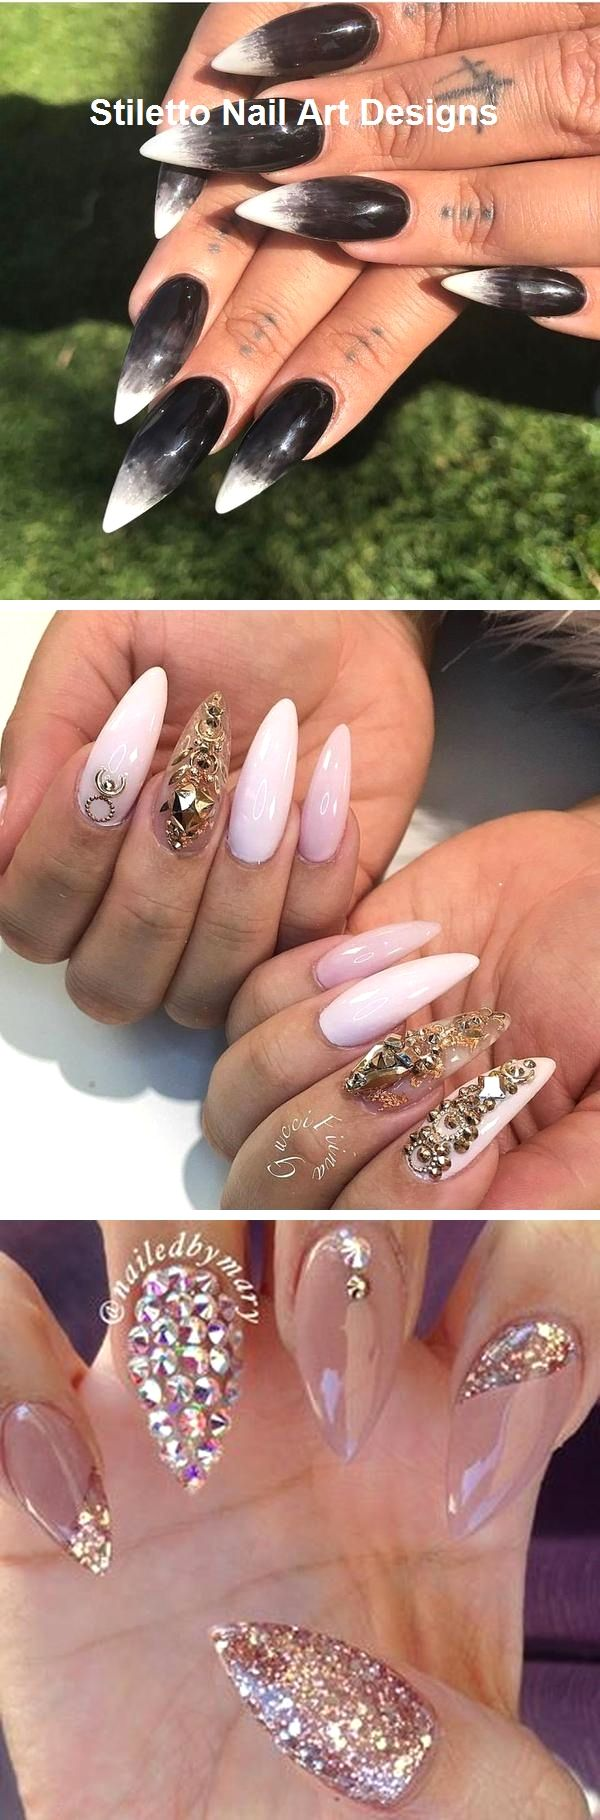 30 Ideen für großartige Stiletto-Nageldesigns #stiletto – Nägel / Nails